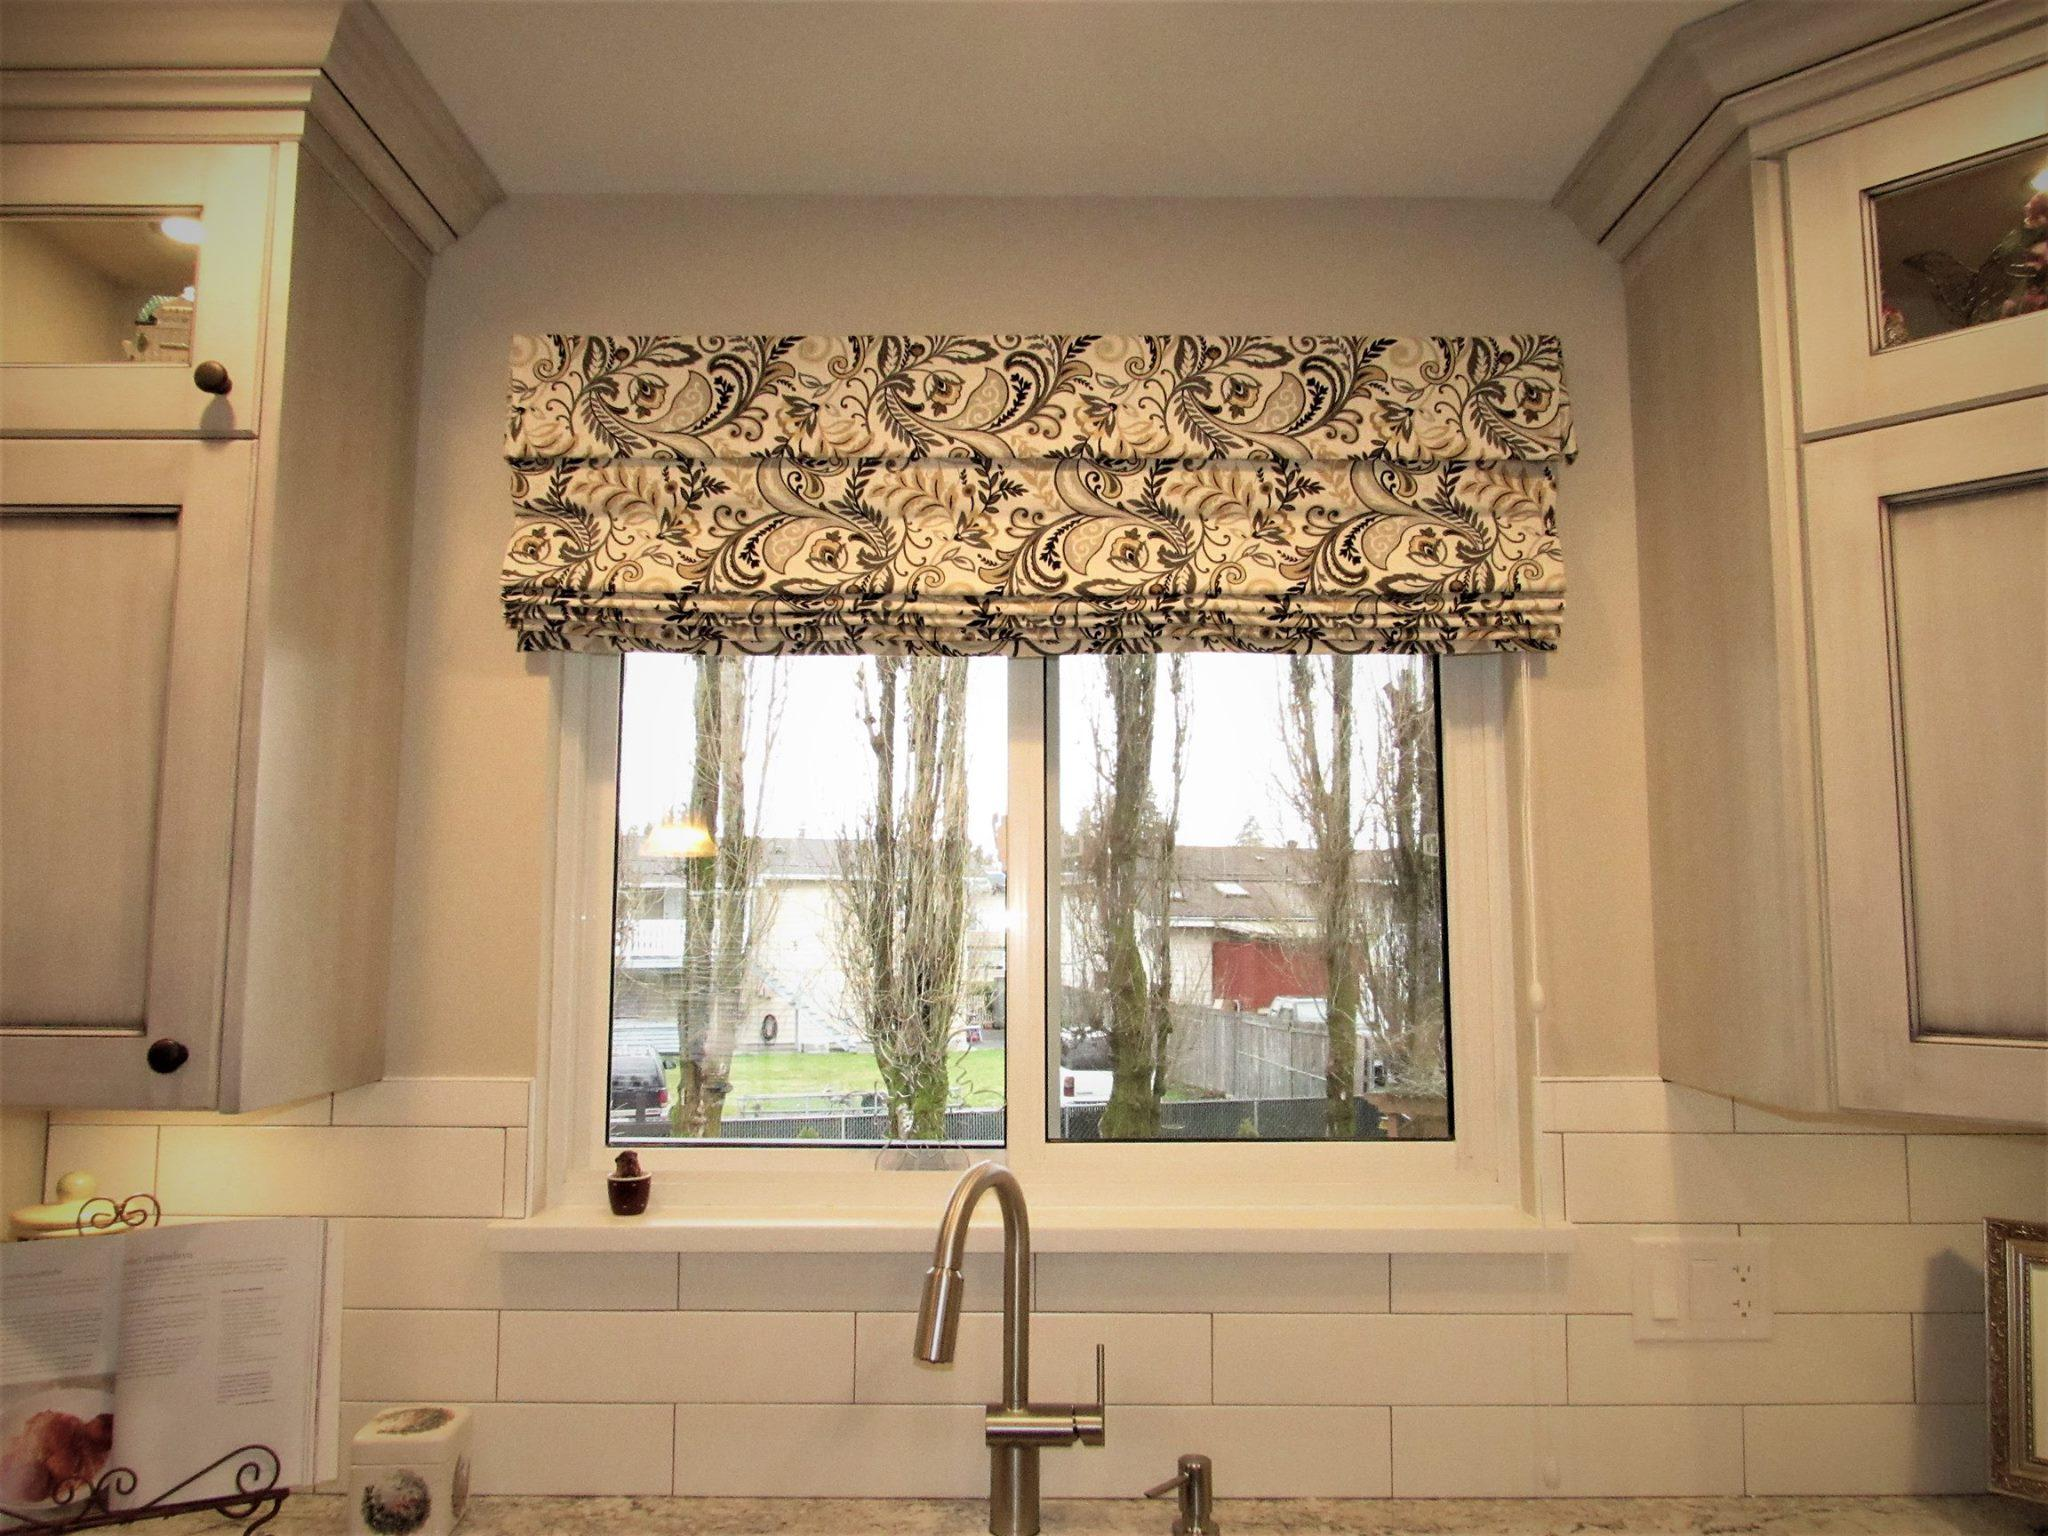 Budget Blinds of Delta, South Surrey and White Rock in Delta: Kitchen Roman Shade: Having a soft treatment in a kitchen window is the biggest trend right now. Choose a pattern that compliments your kitchen decor and ads a pop of design